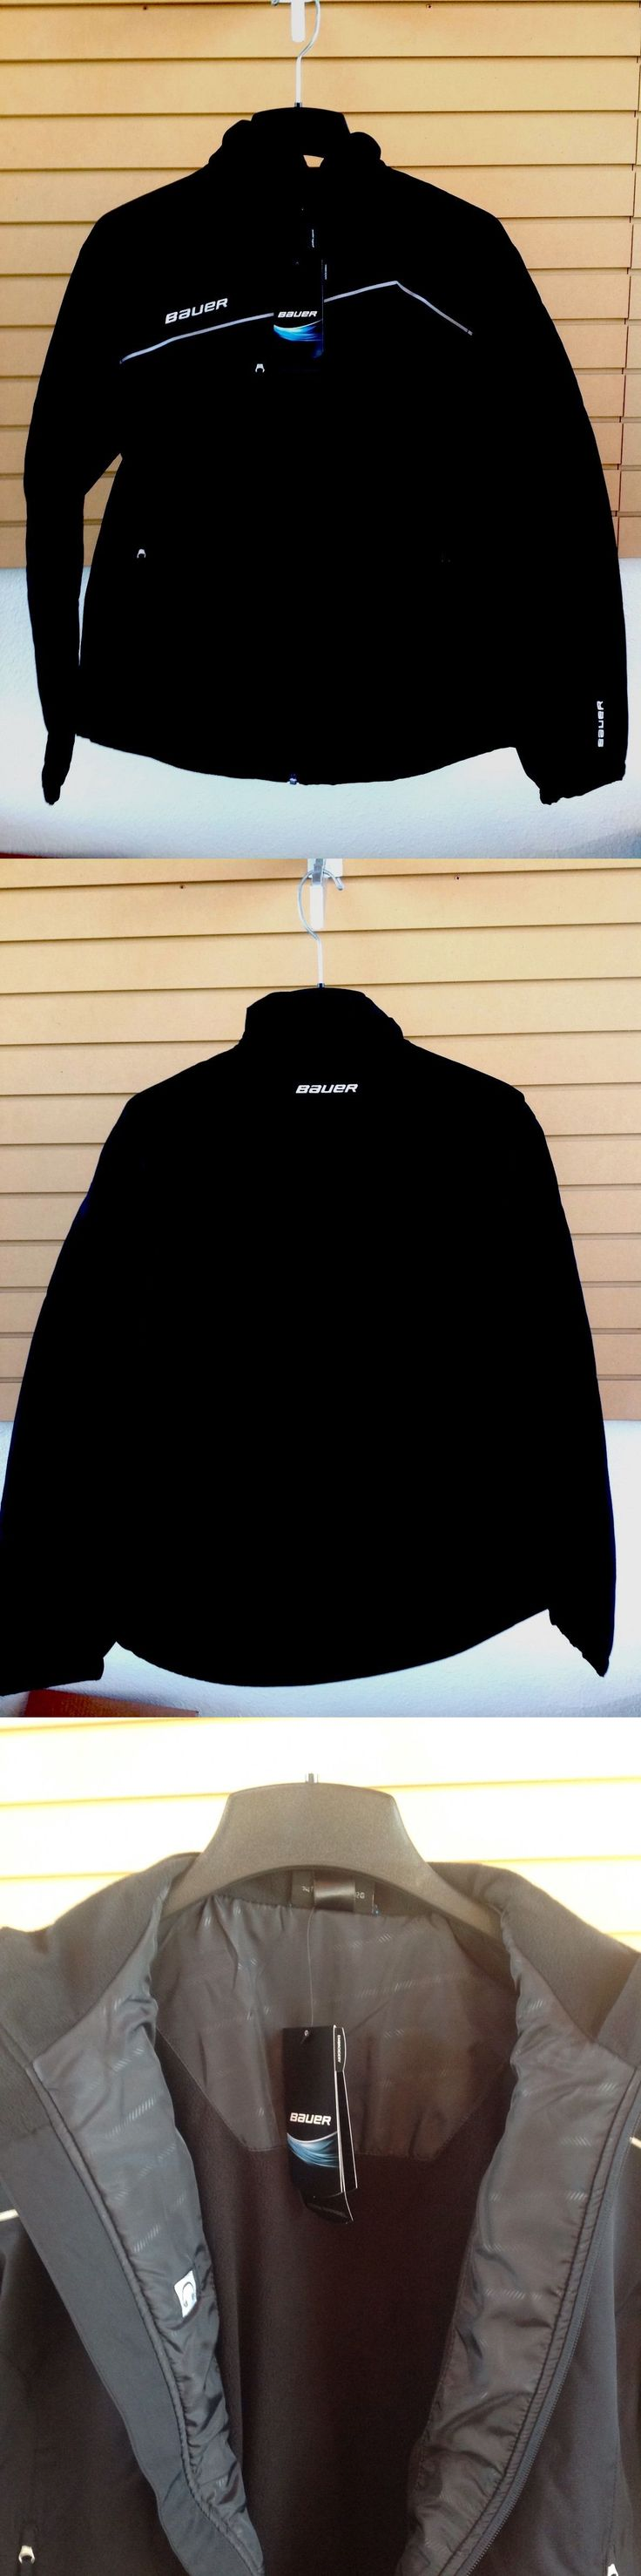 Men 159122: Bauer Hockey Black Midweight Warmup Jacket Size Adult Senior -> BUY IT NOW ONLY: $53 on eBay!